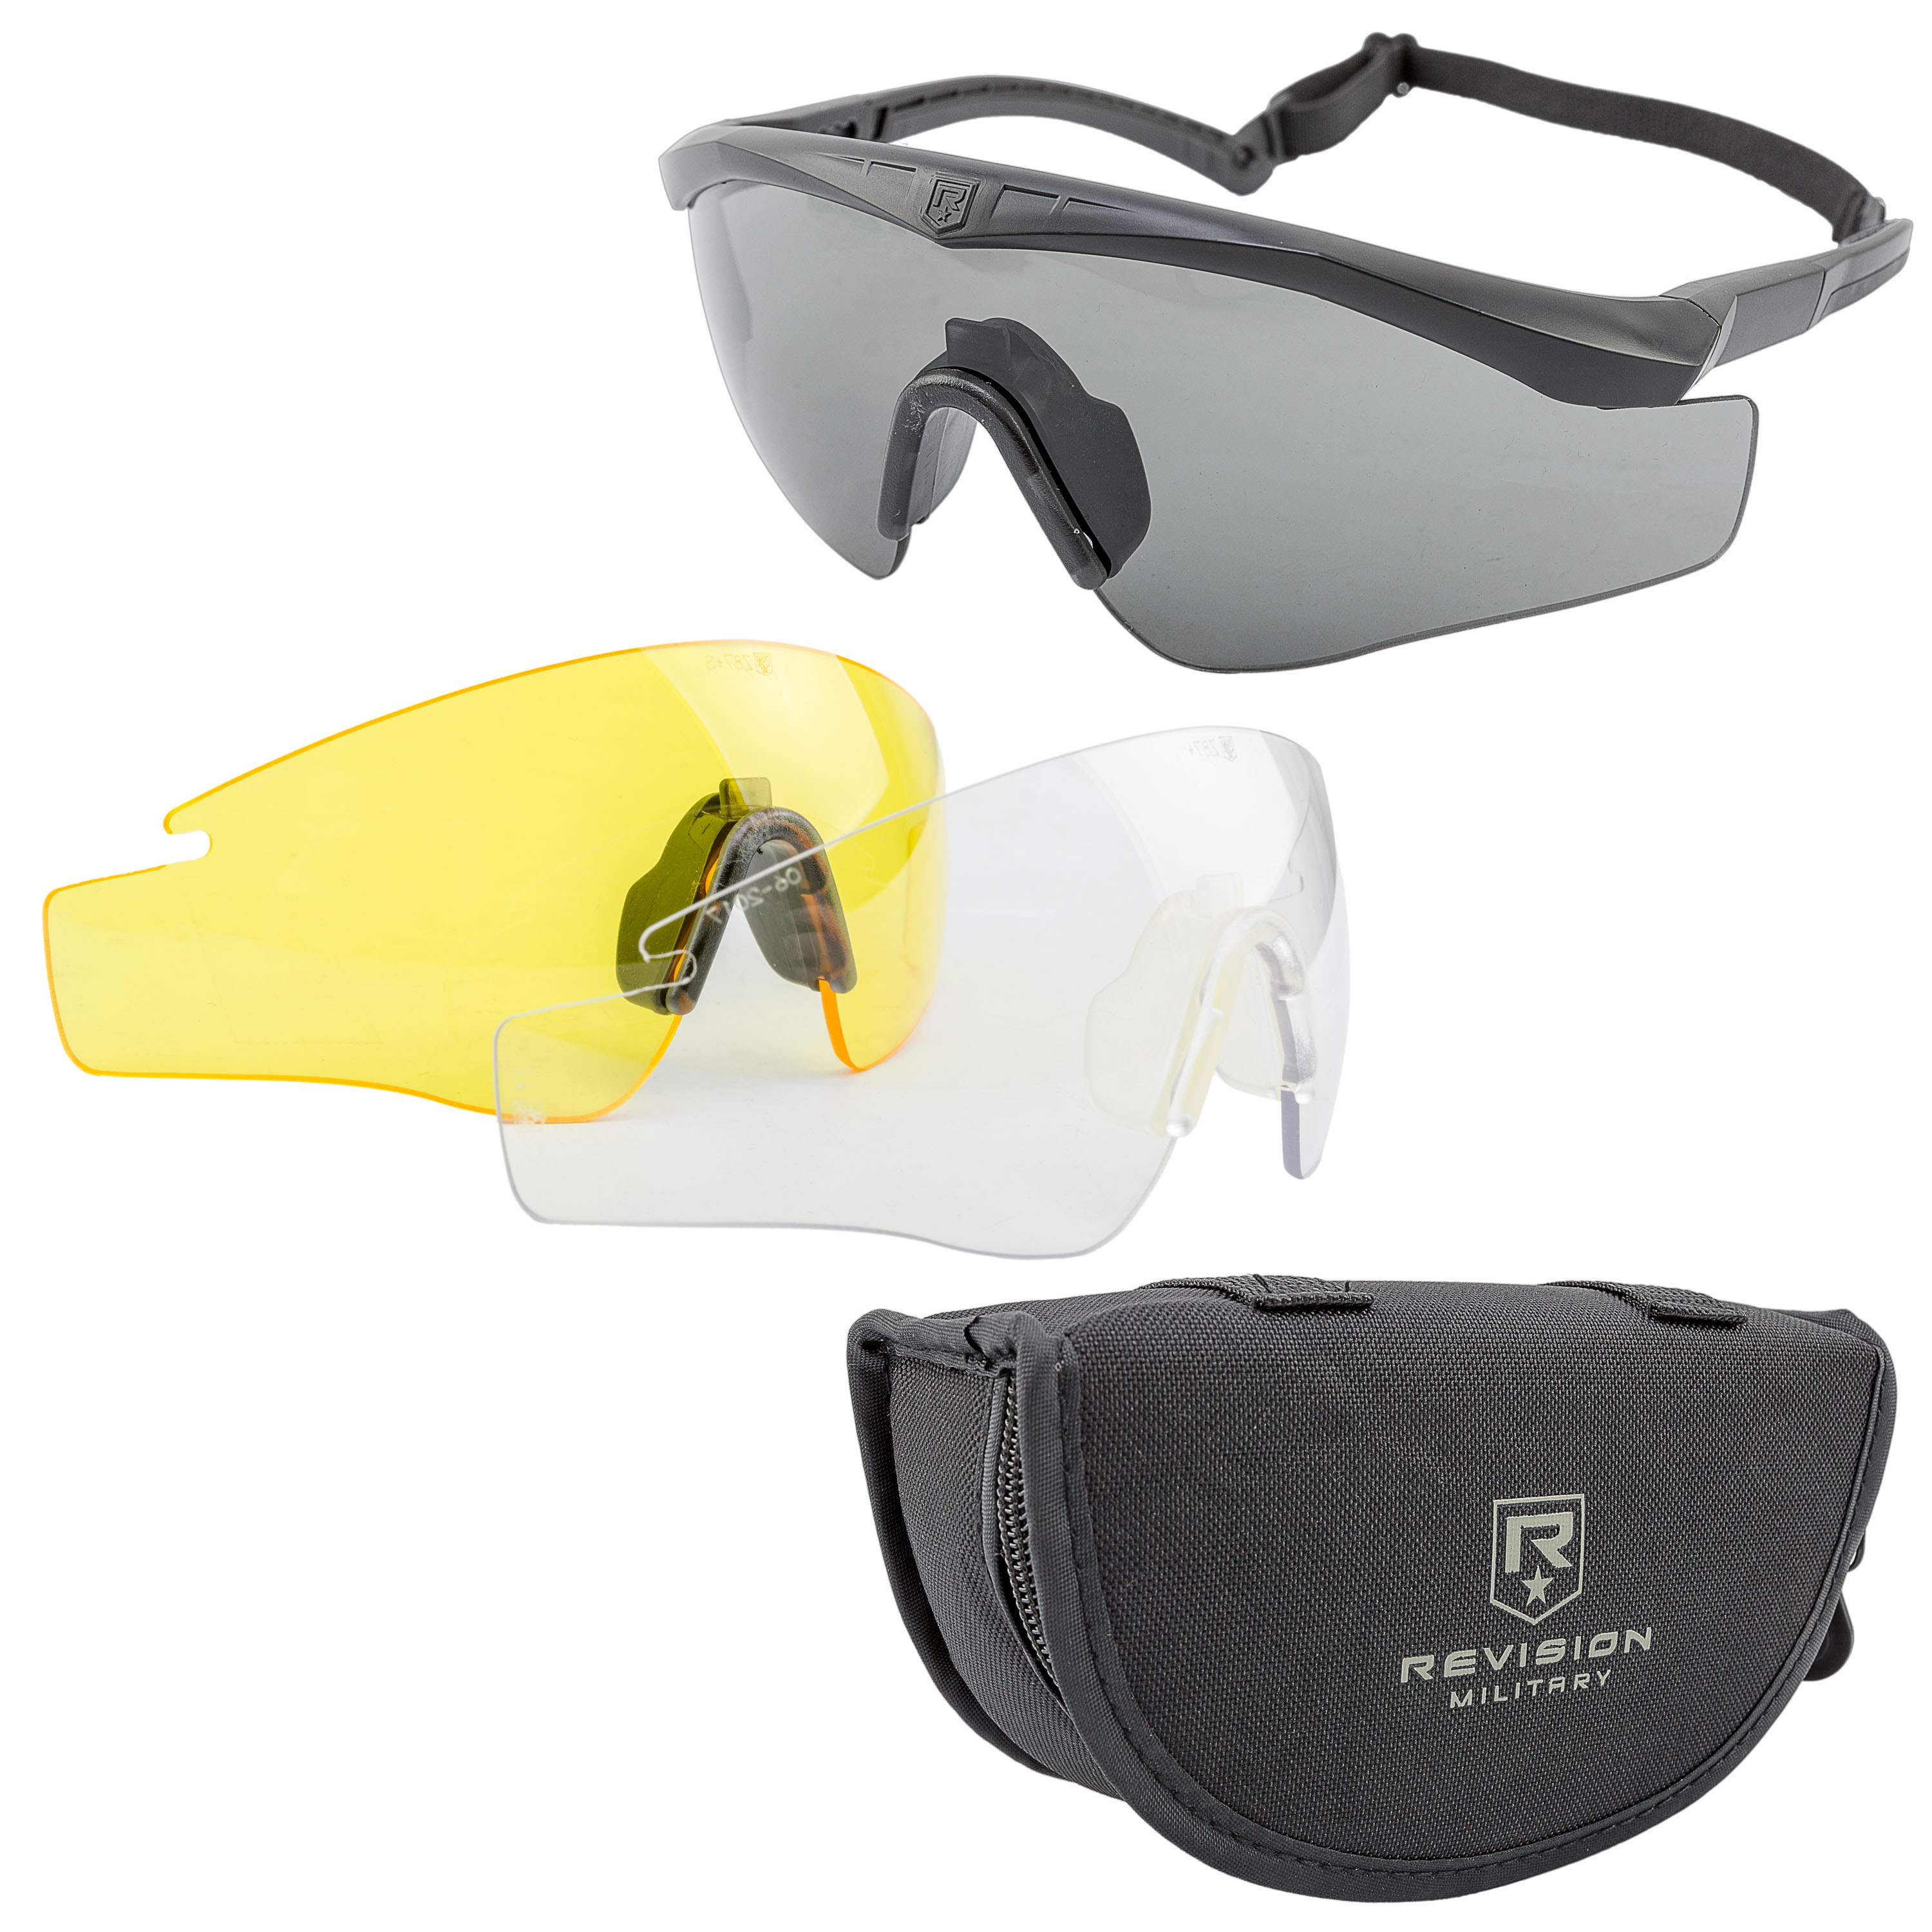 Revision Brille Sawfly Max-Wrap Mission Kit schwarz small